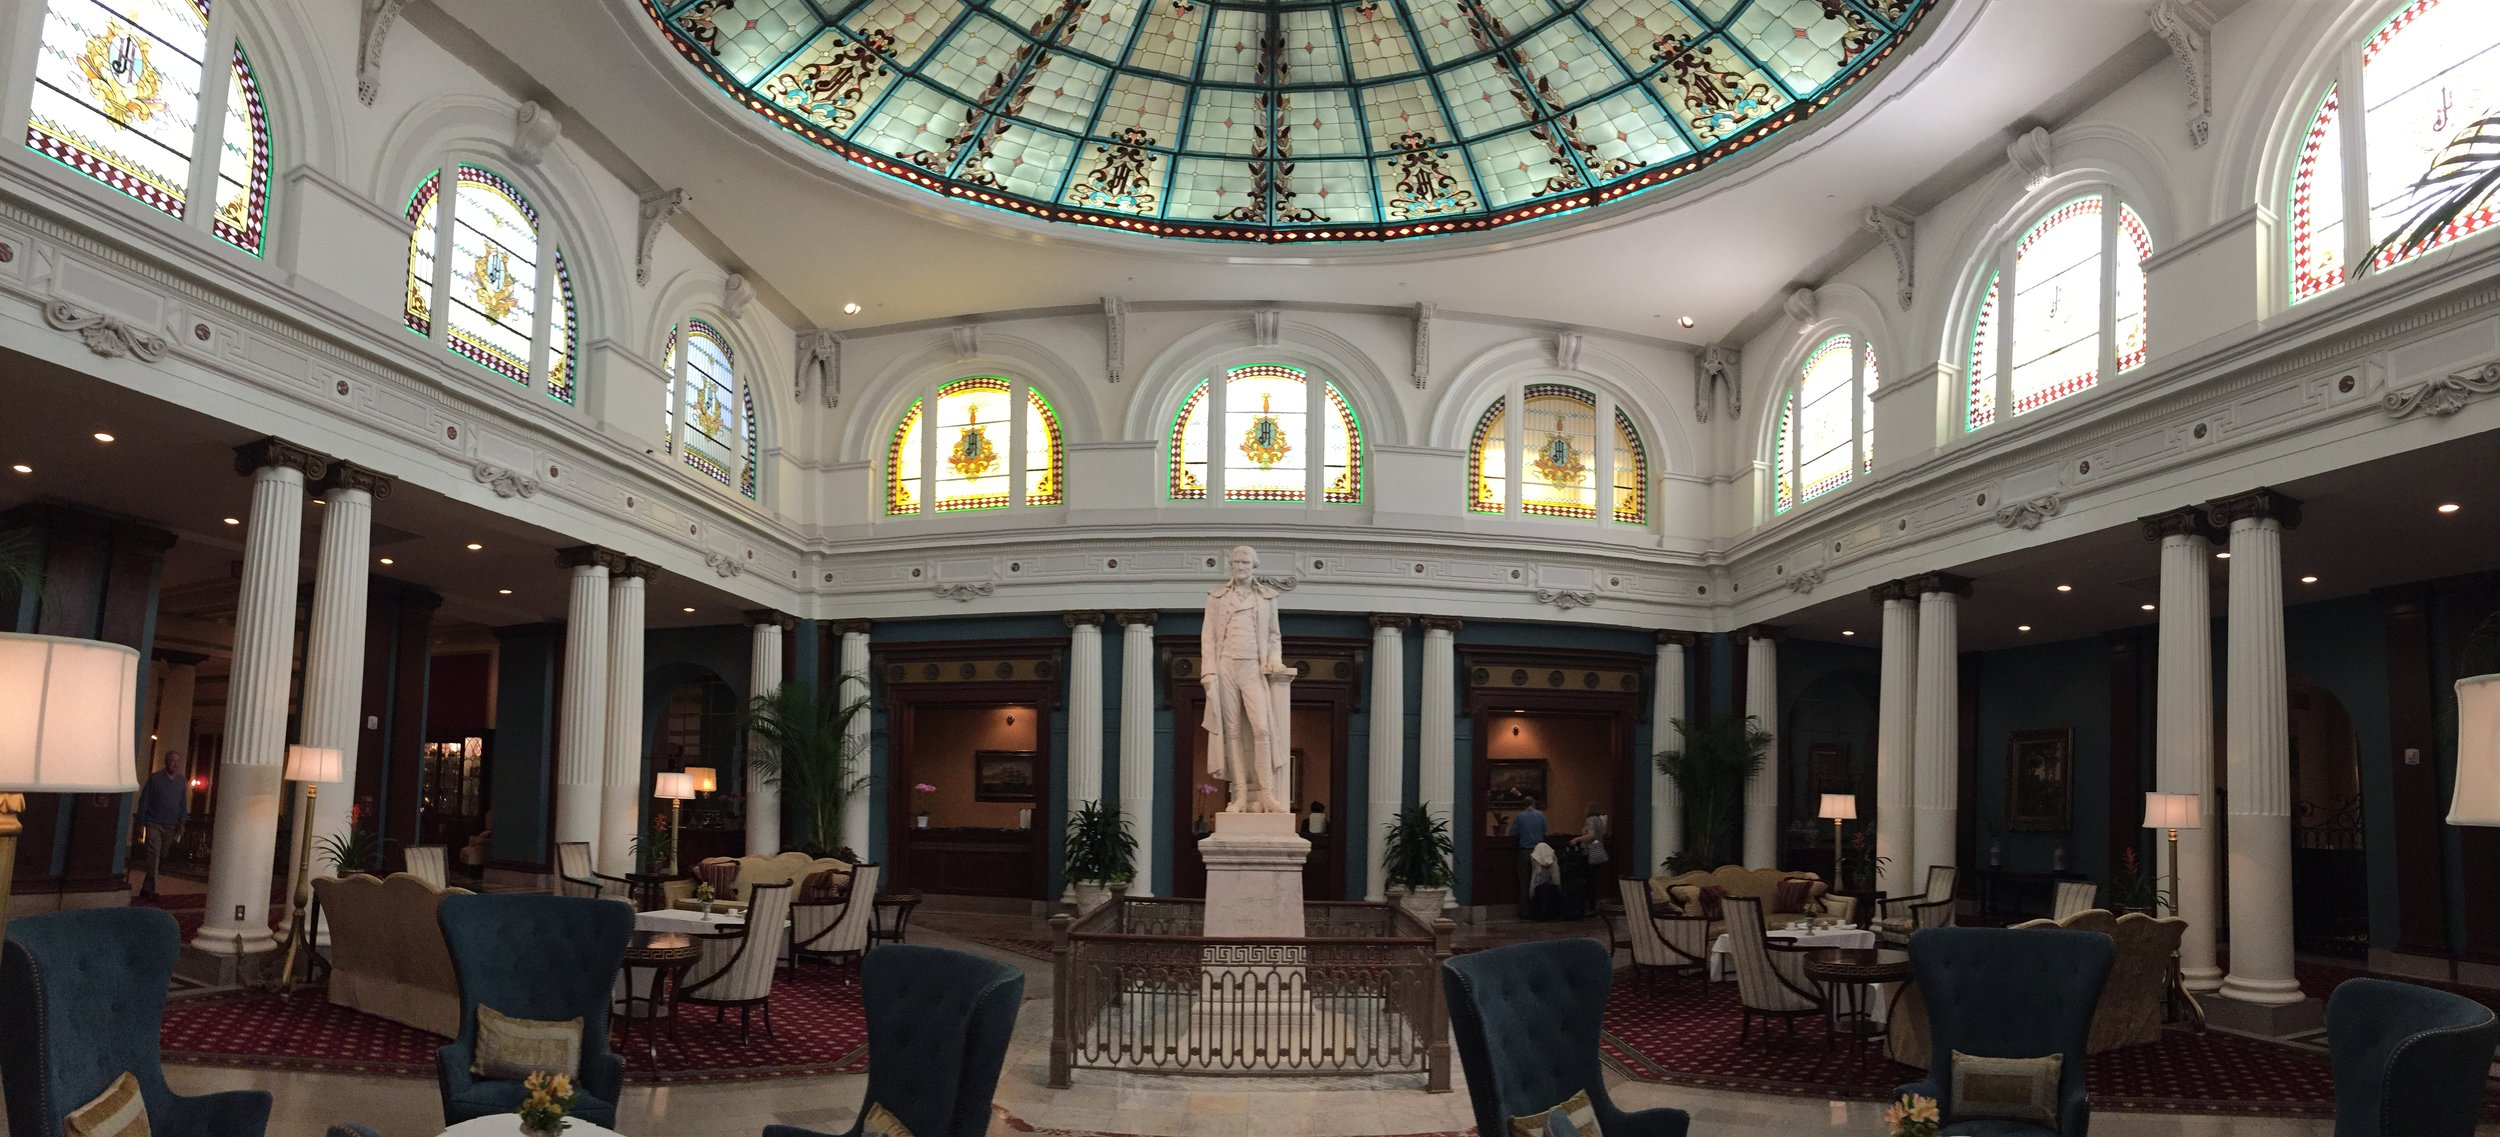 Inside the Jefferson Hotel